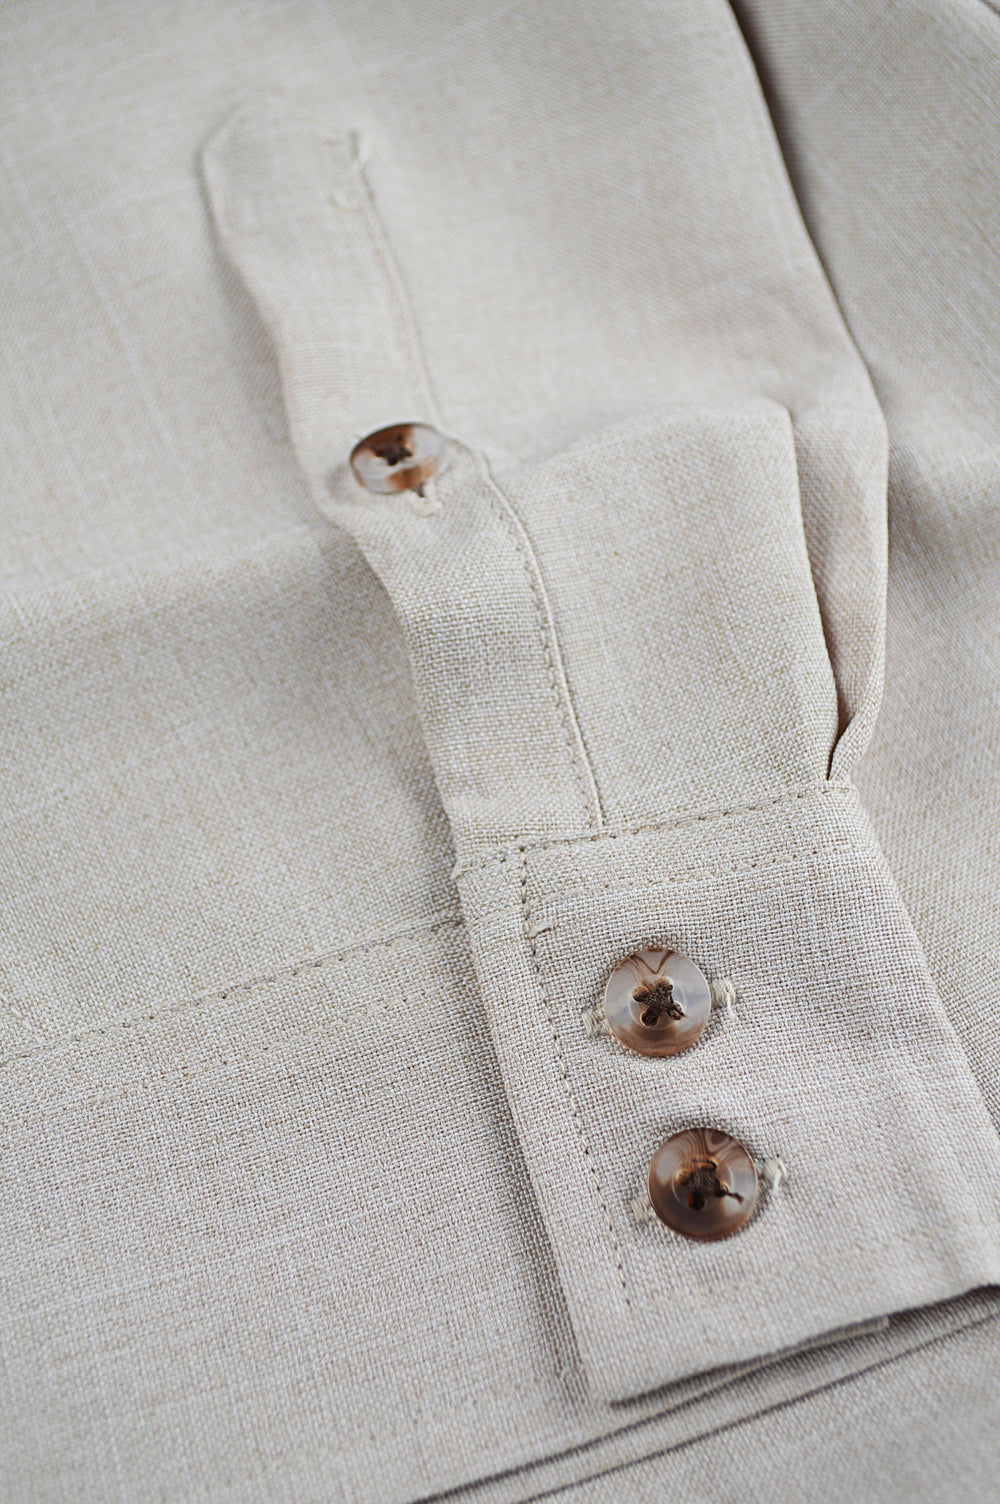 cuff of non-iron linen shirt